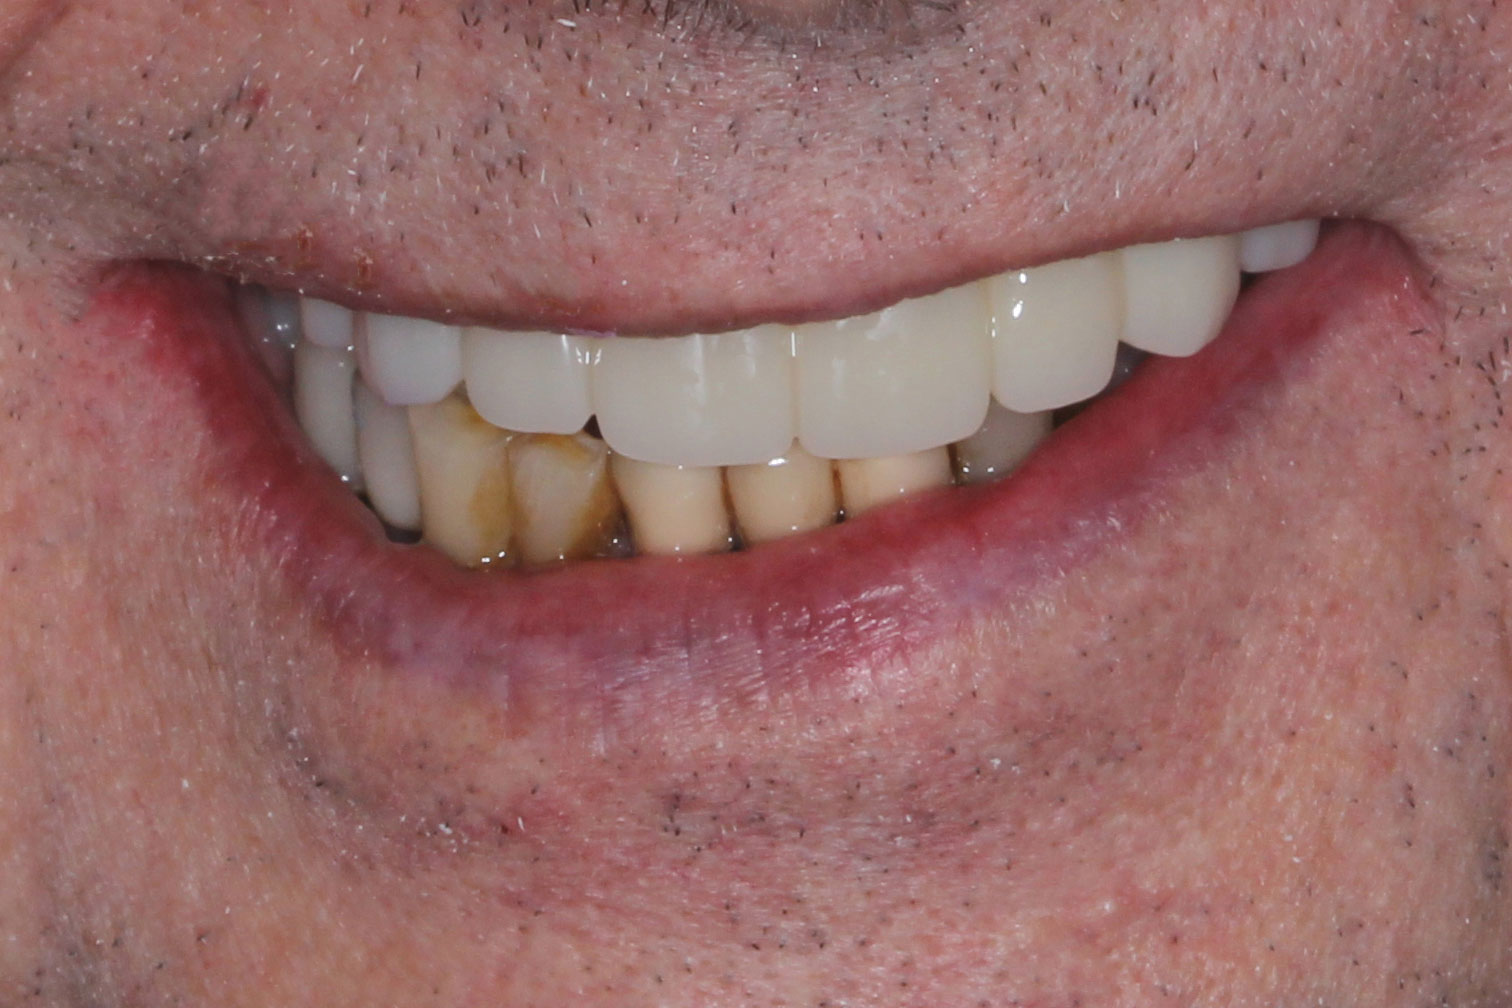 Restored implants for the teeth